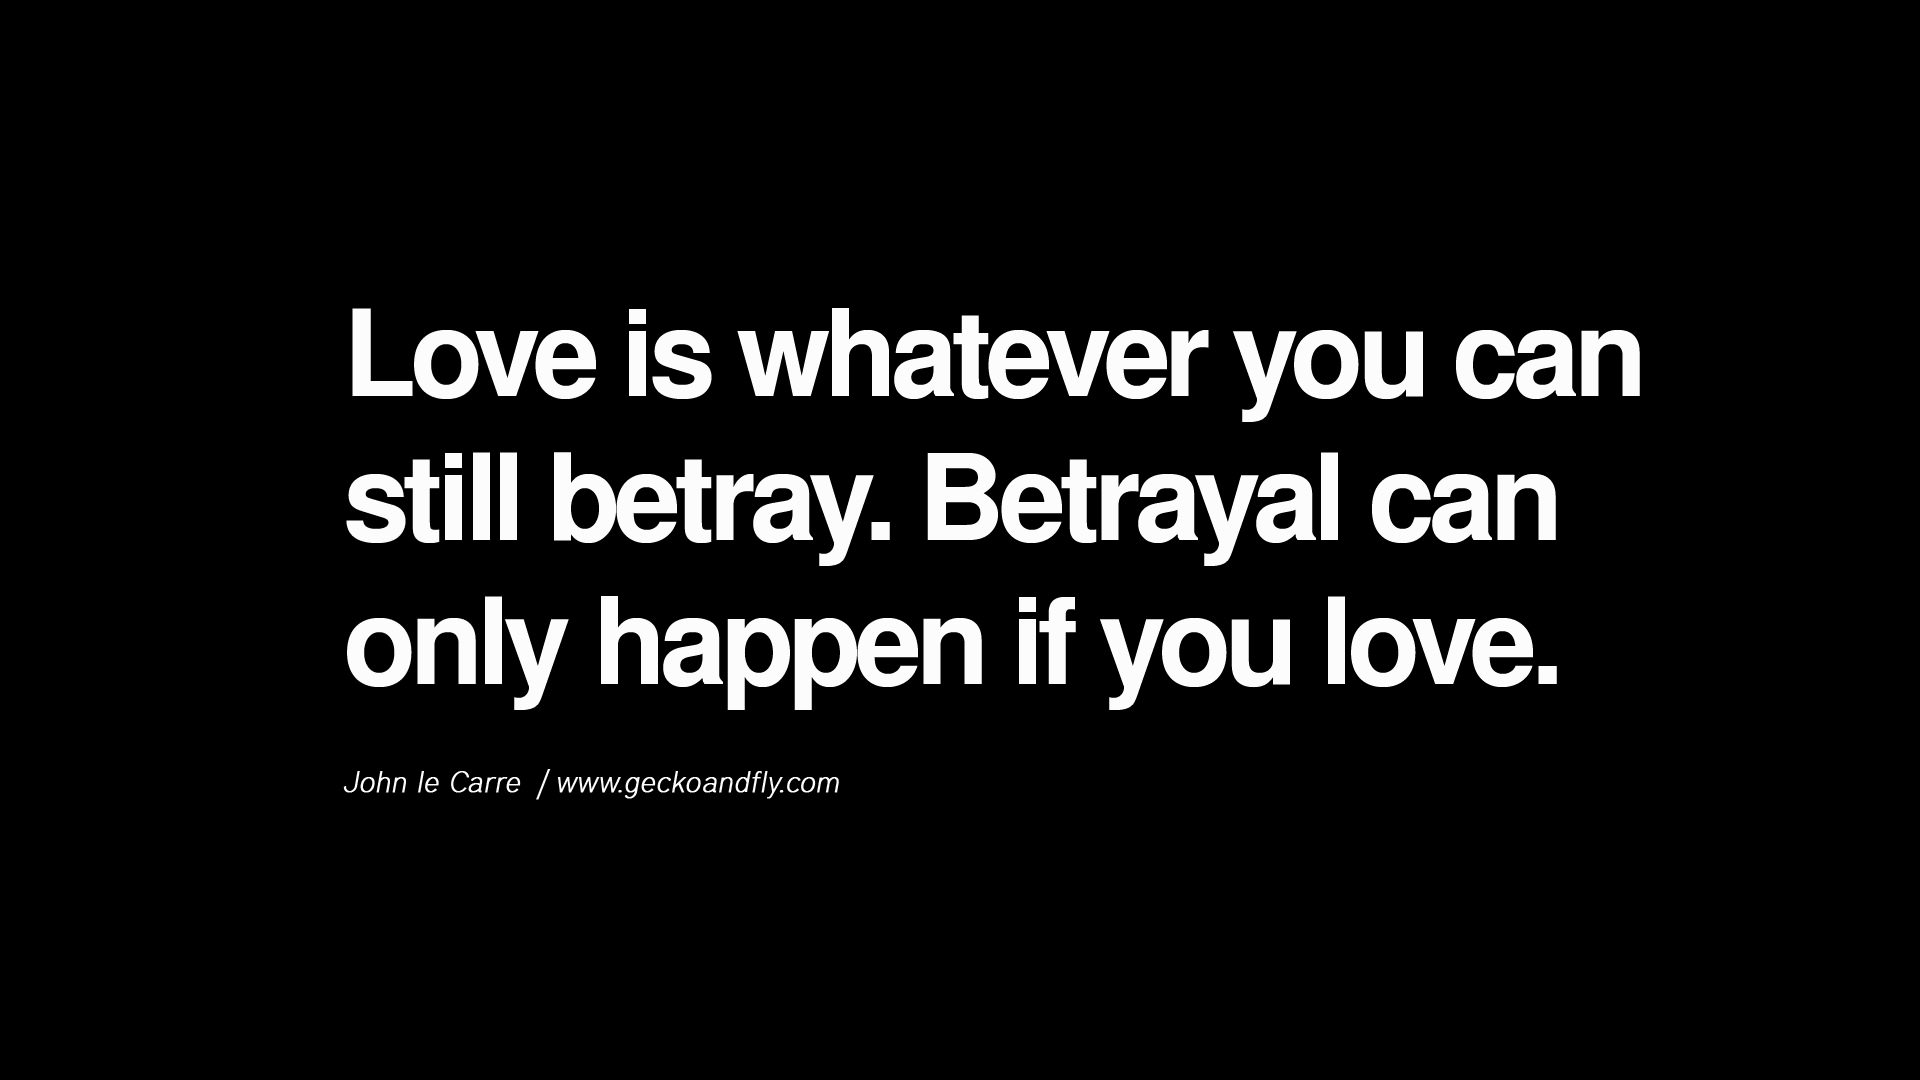 Fathers Betrayal Quotes And Sayings Quotesgram: Famous Quotes About Friendship Betrayal. QuotesGram